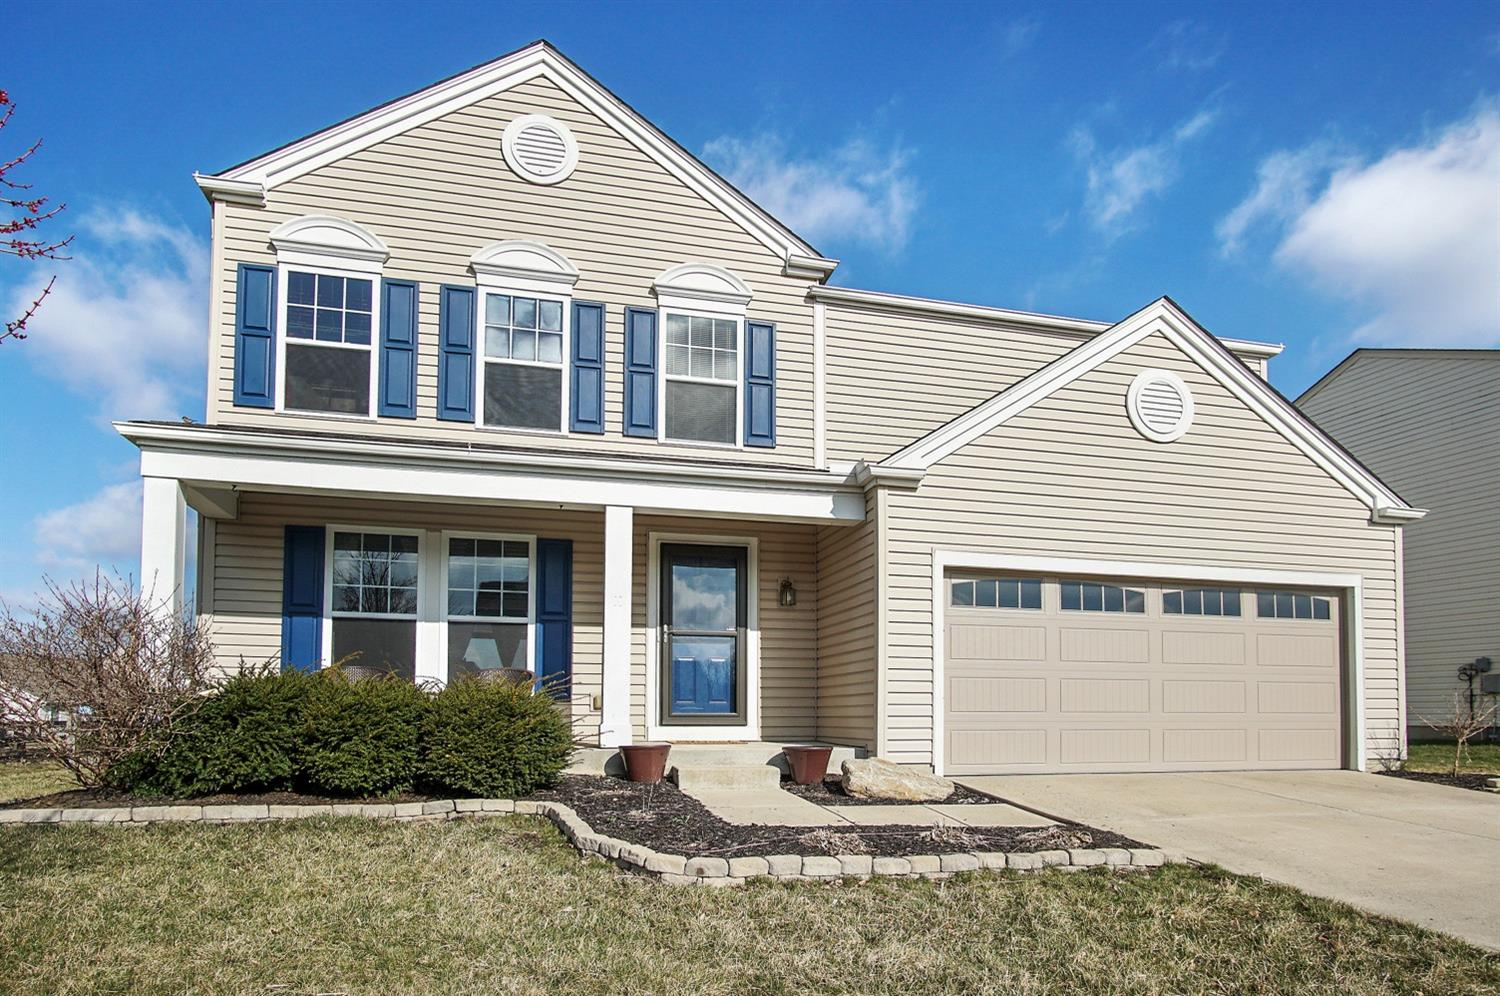 Property for sale at 1731 Greentree Meadows Drive, Turtle Creek Twp,  Ohio 45036